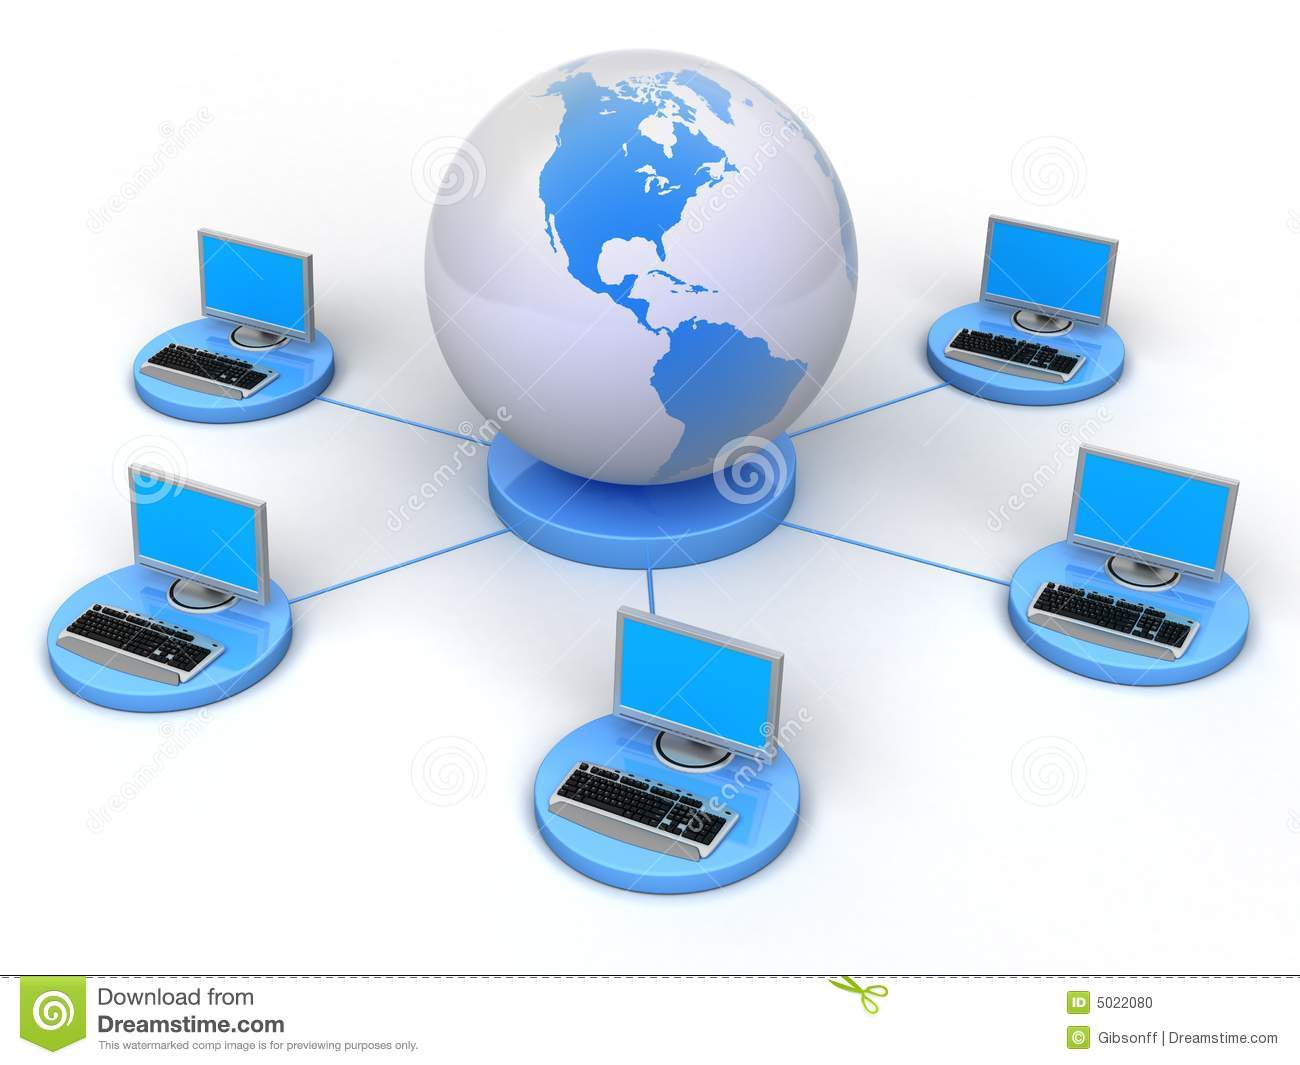 Global Computer Network Stock Photo  Image: 5022080